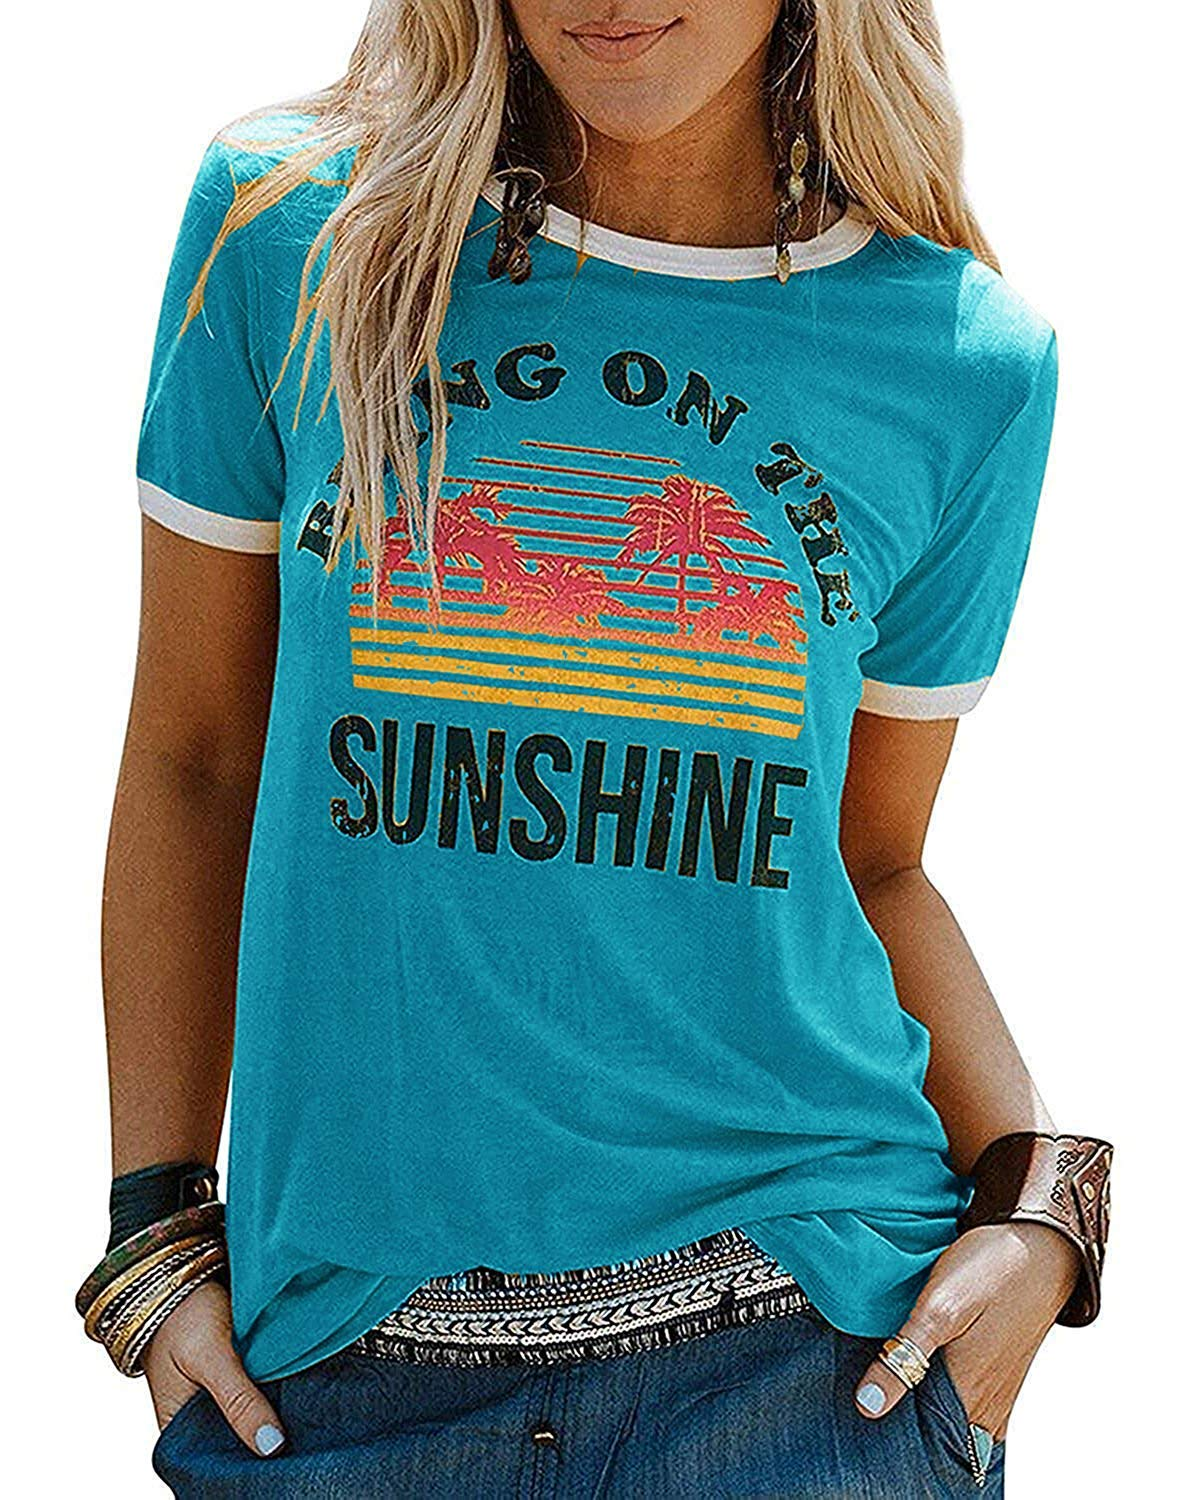 IRISGOD Womens Bring on The Sunshine Cute Graphic Tees Summer Casual Vacation T Shirt Tops